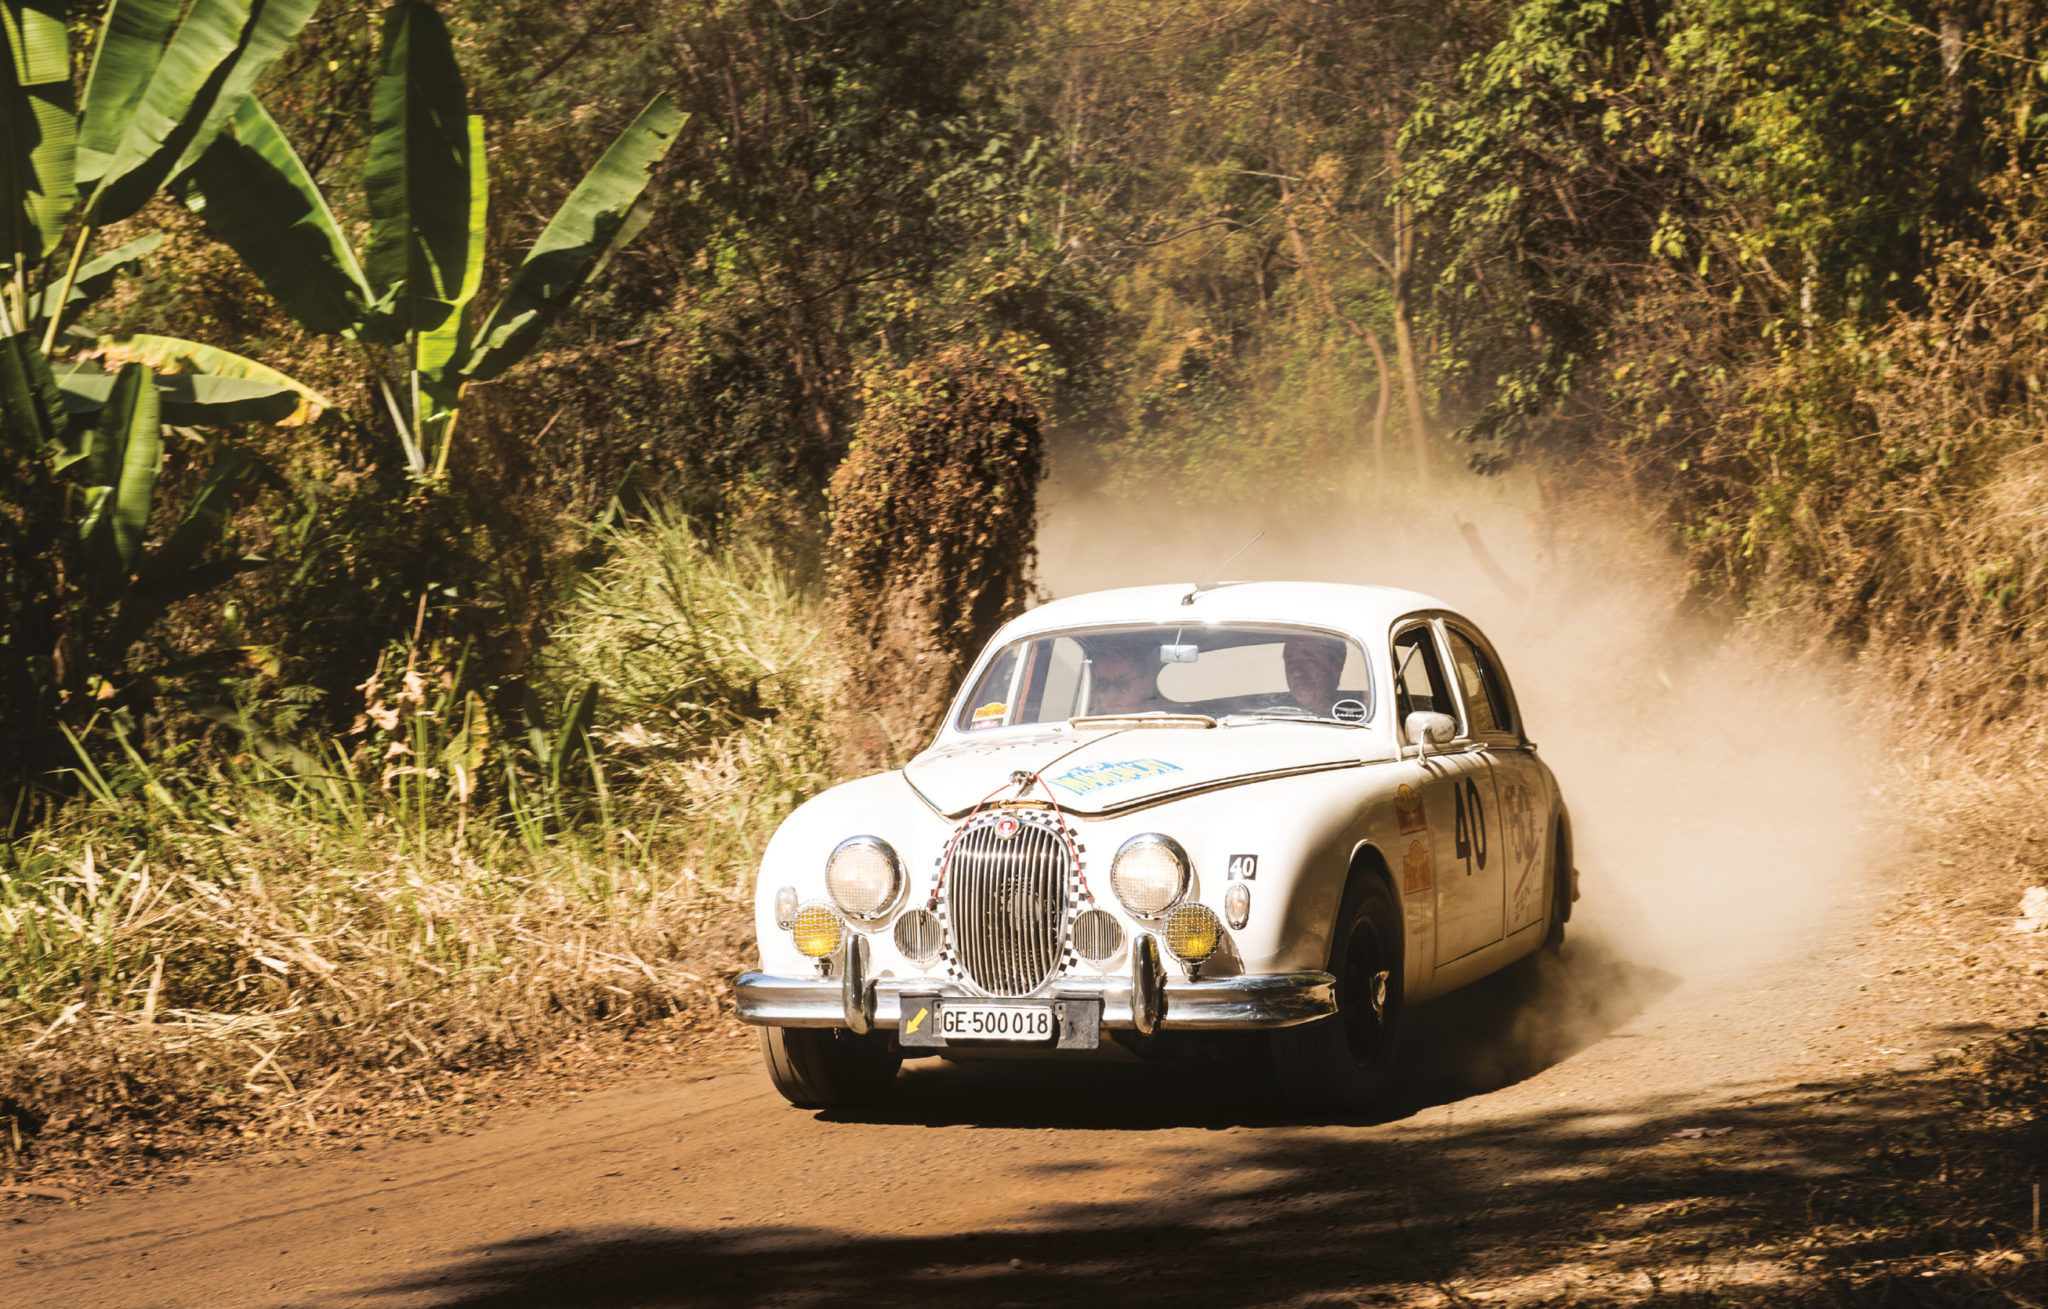 The Spadini rally fleet boasts his Citroen and this Mk1 Jag, which he took on the Road to Mandalay